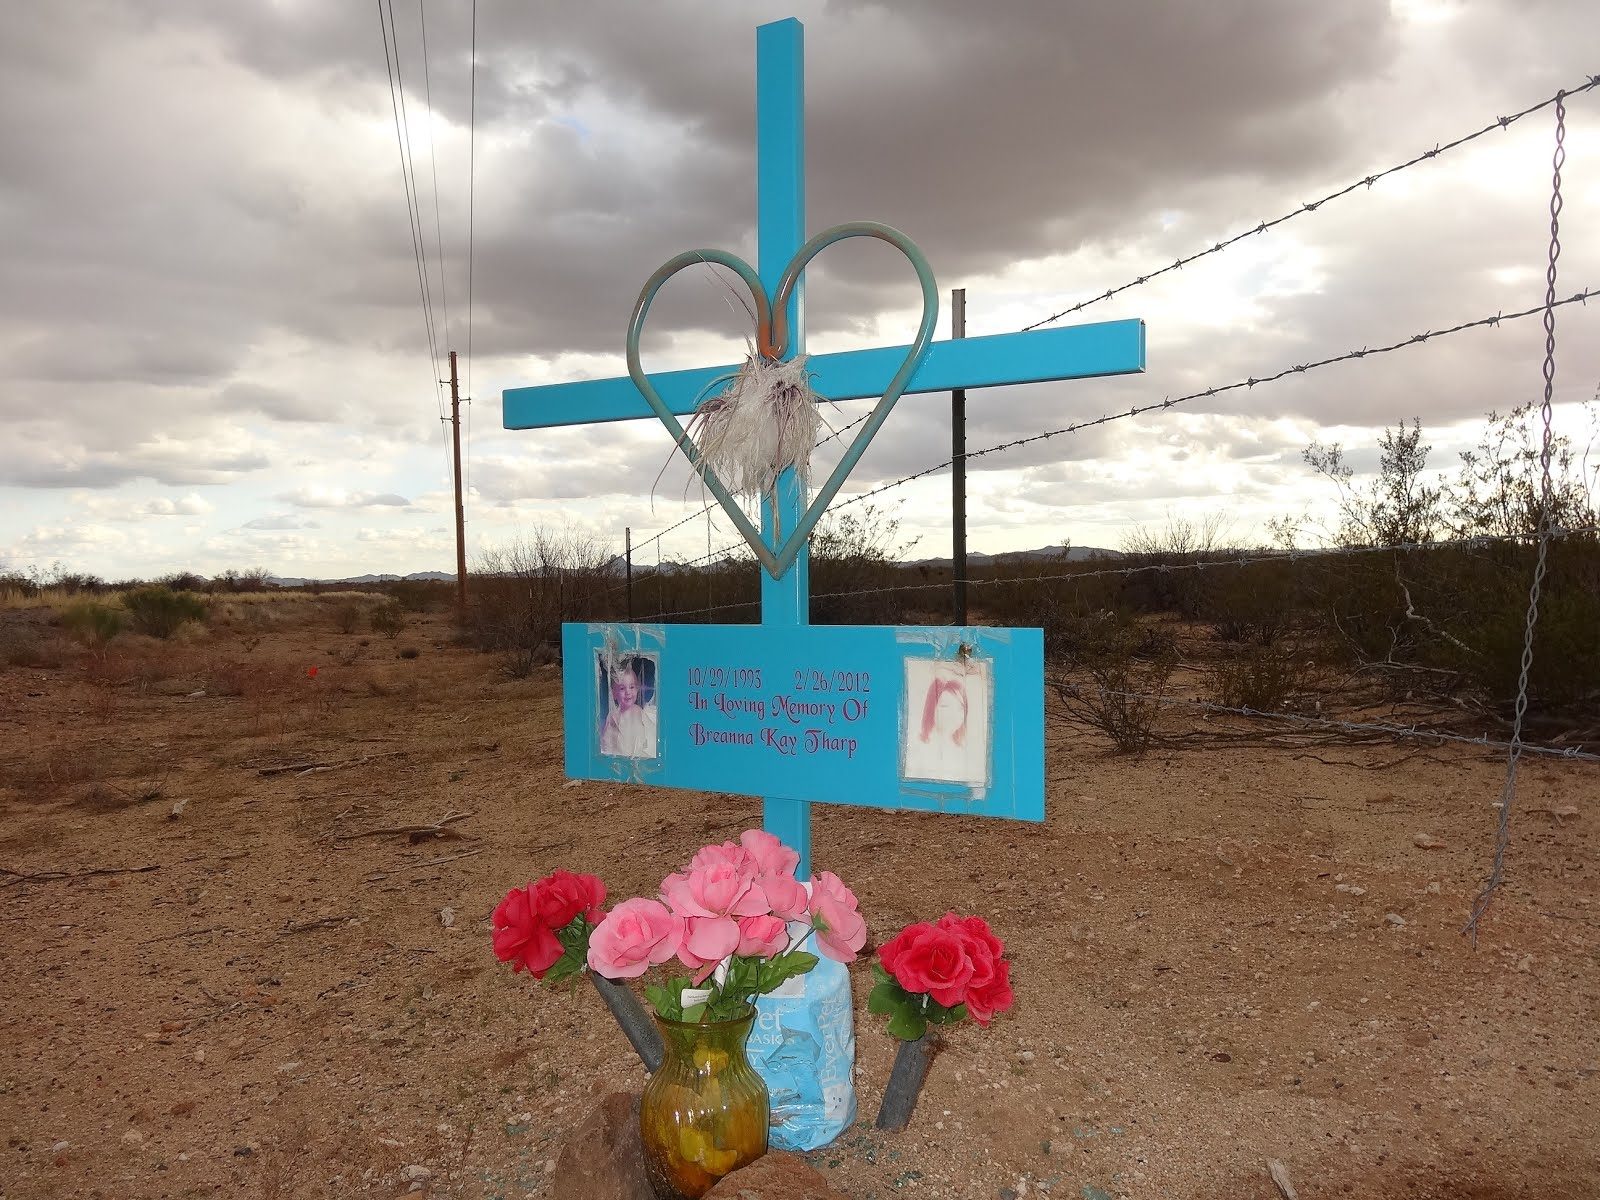 Descansos: Spanish for Sacred Tribute to Loved Ones Perished on the Road.